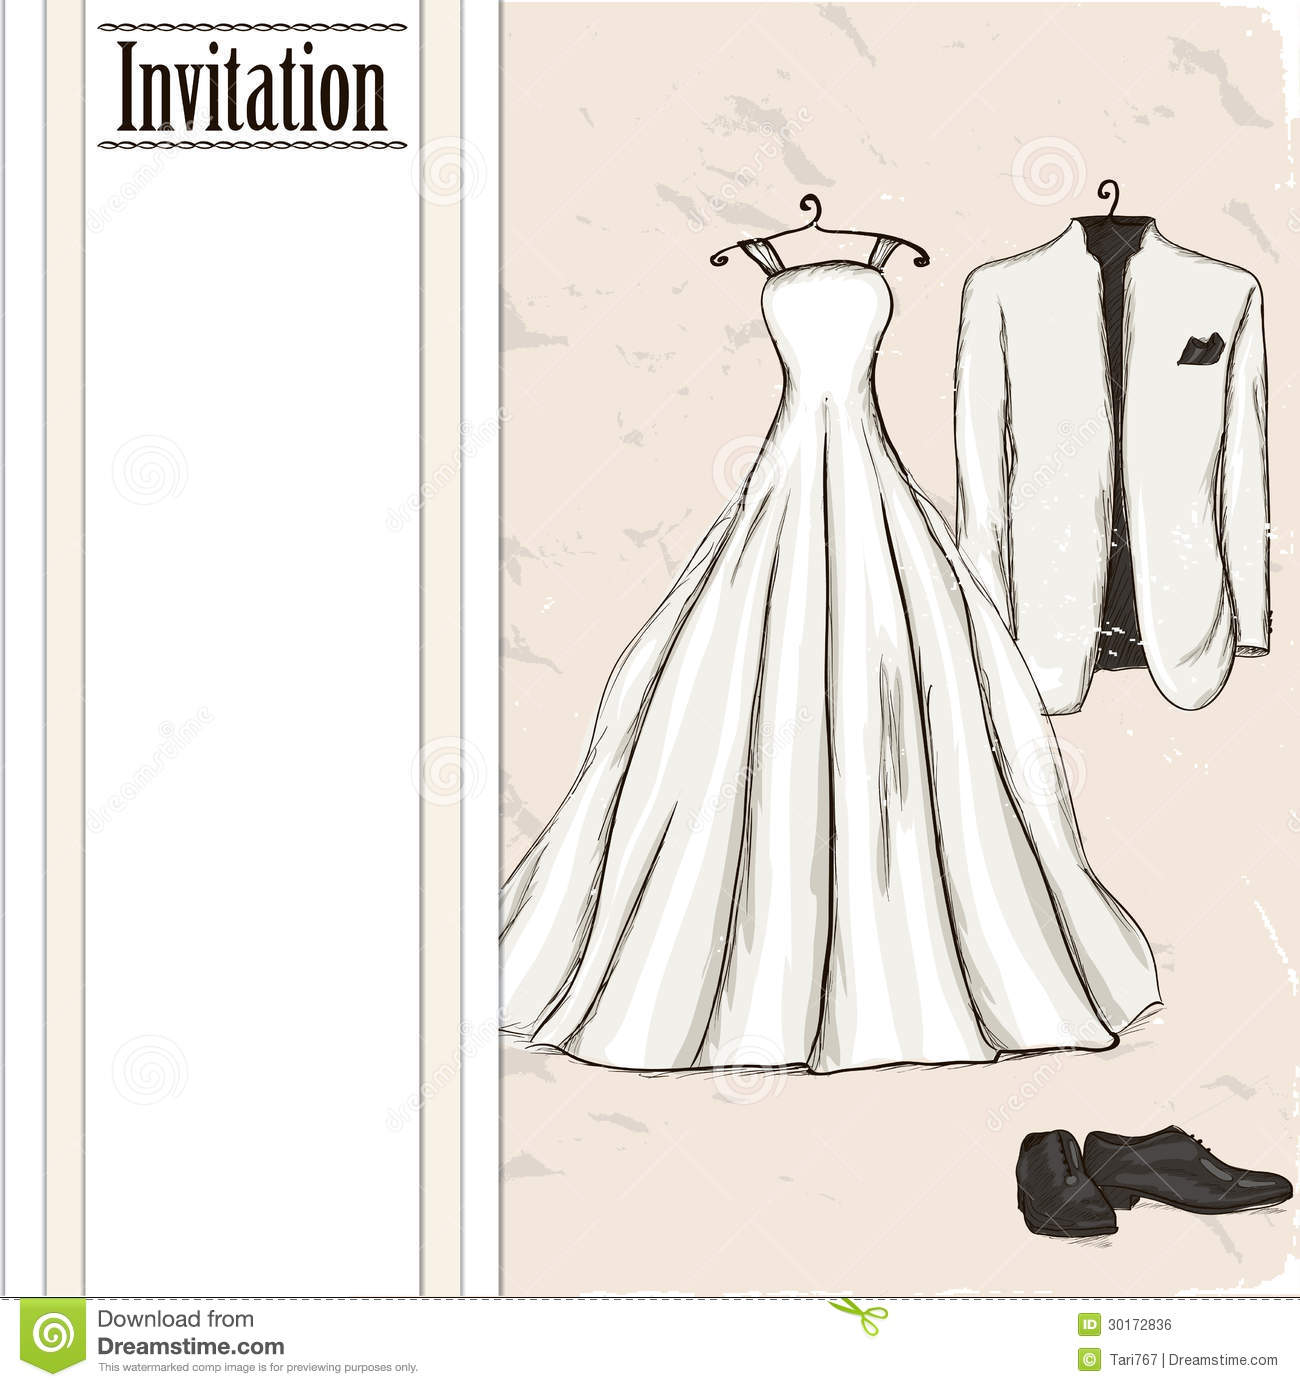 Wedding Gown Illustrations: Vintage Poster With With A Wedding Dress. Stock Vector